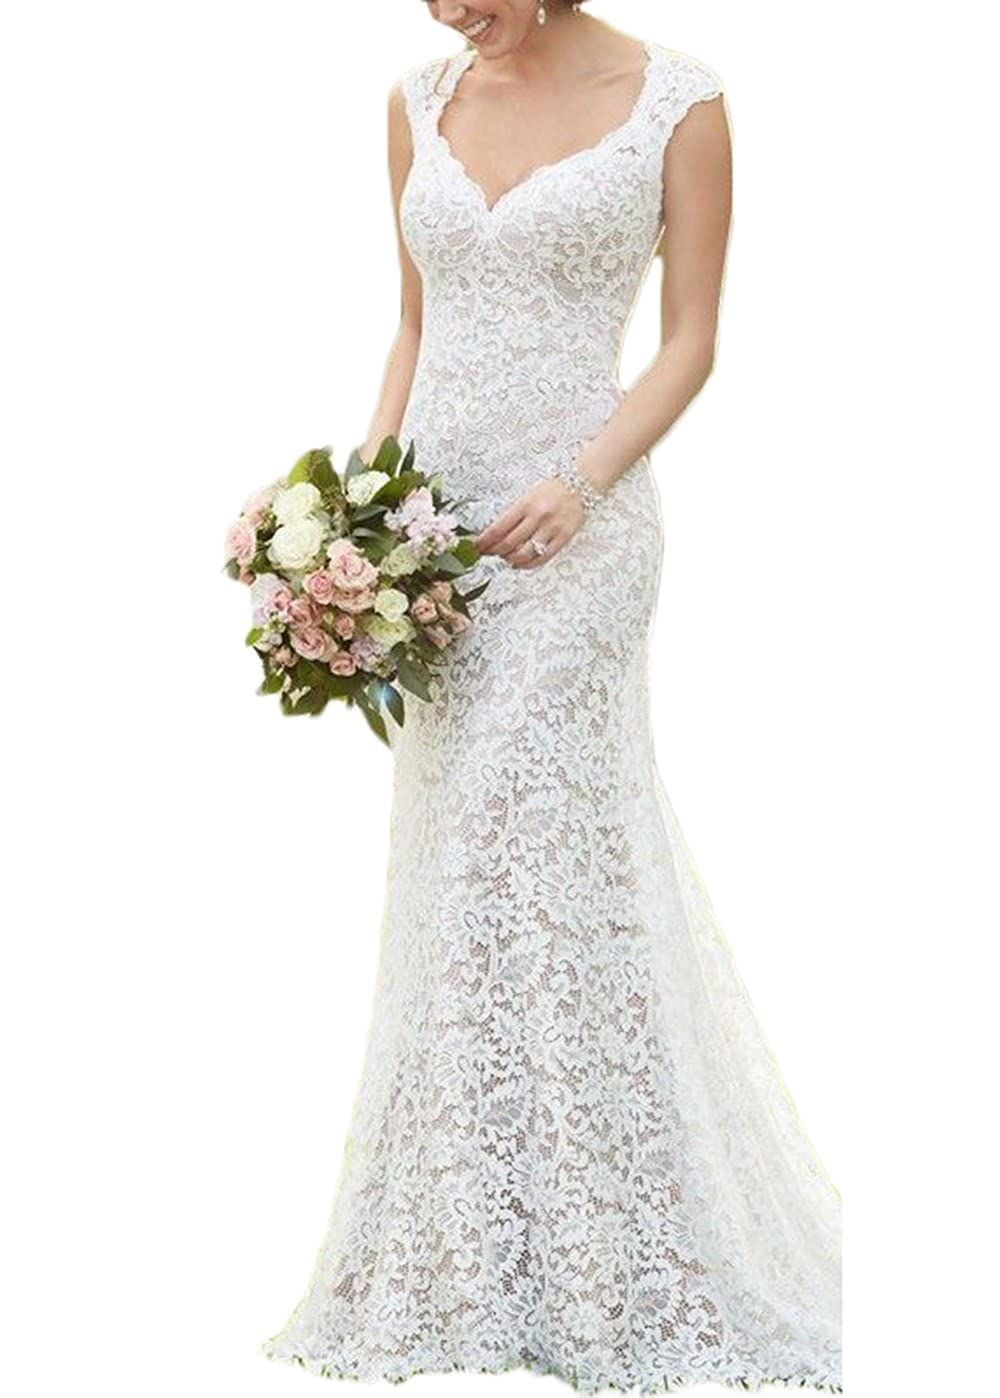 Ivory alilith.Z Sexy Sweetheart Lace Wedding Dresses Bride Open Back Cap Sleeves Mermaid Long Bridal Gowns